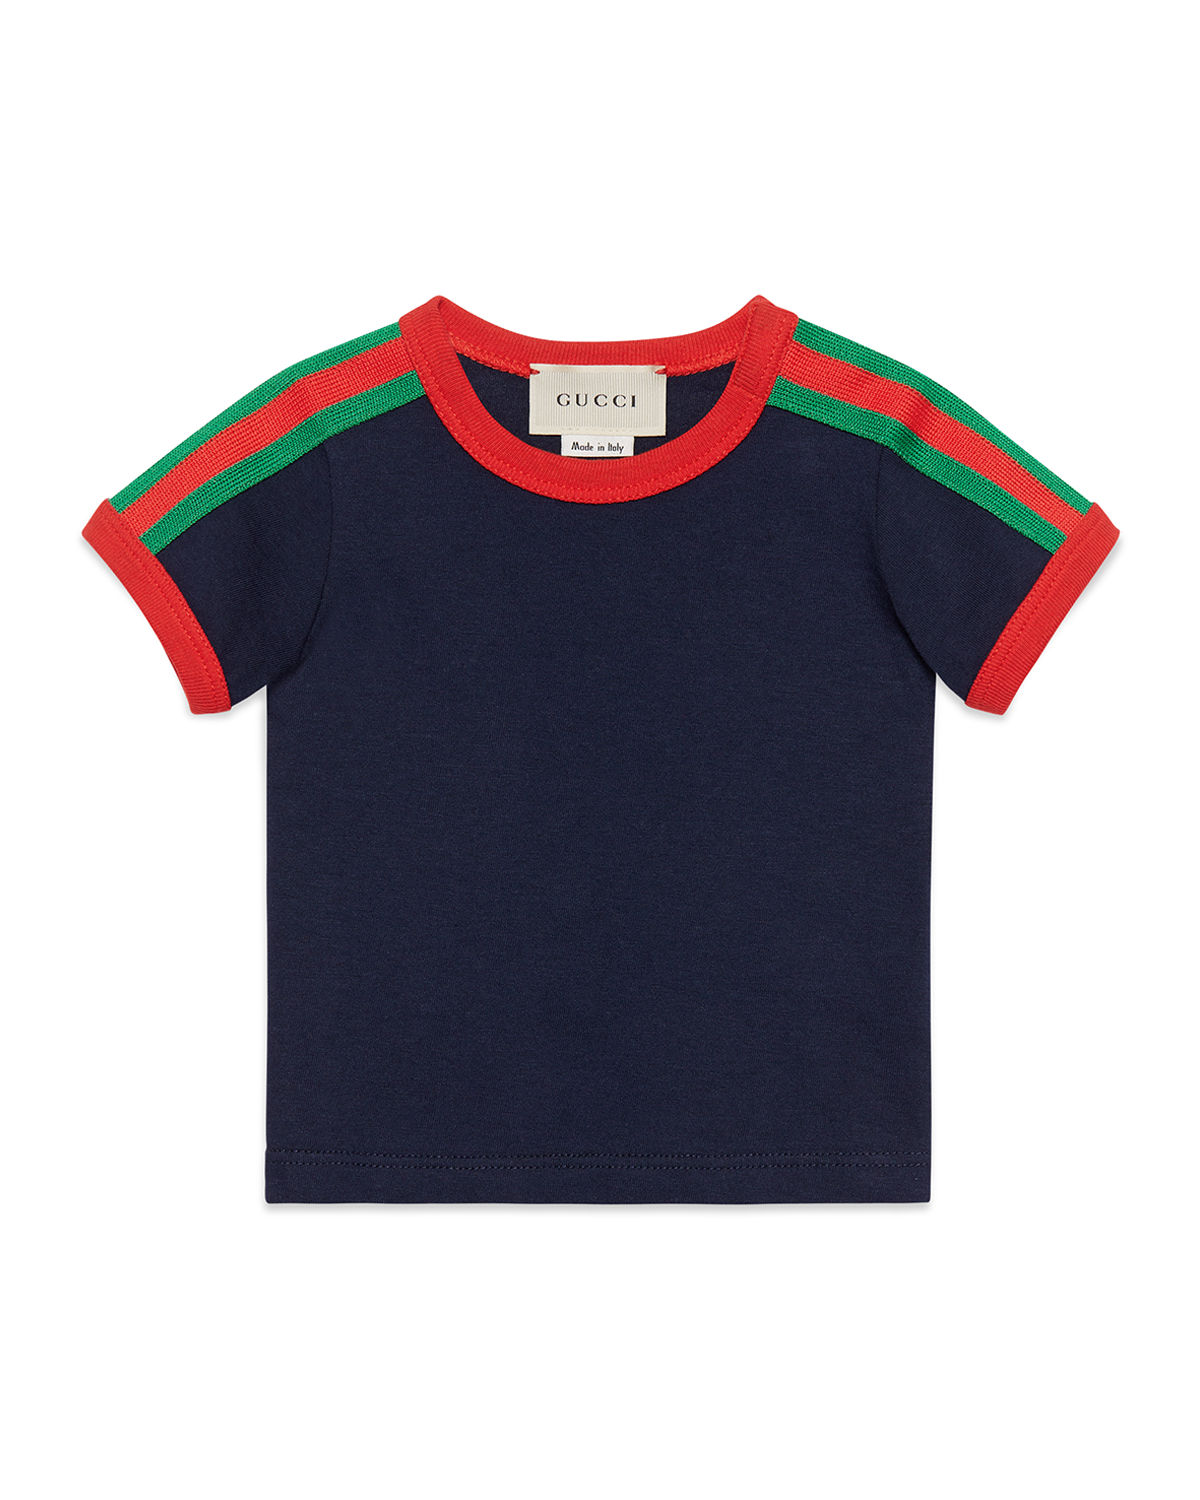 Web Trim Kingsnake Tee, Size 0 36 Months by Gucci